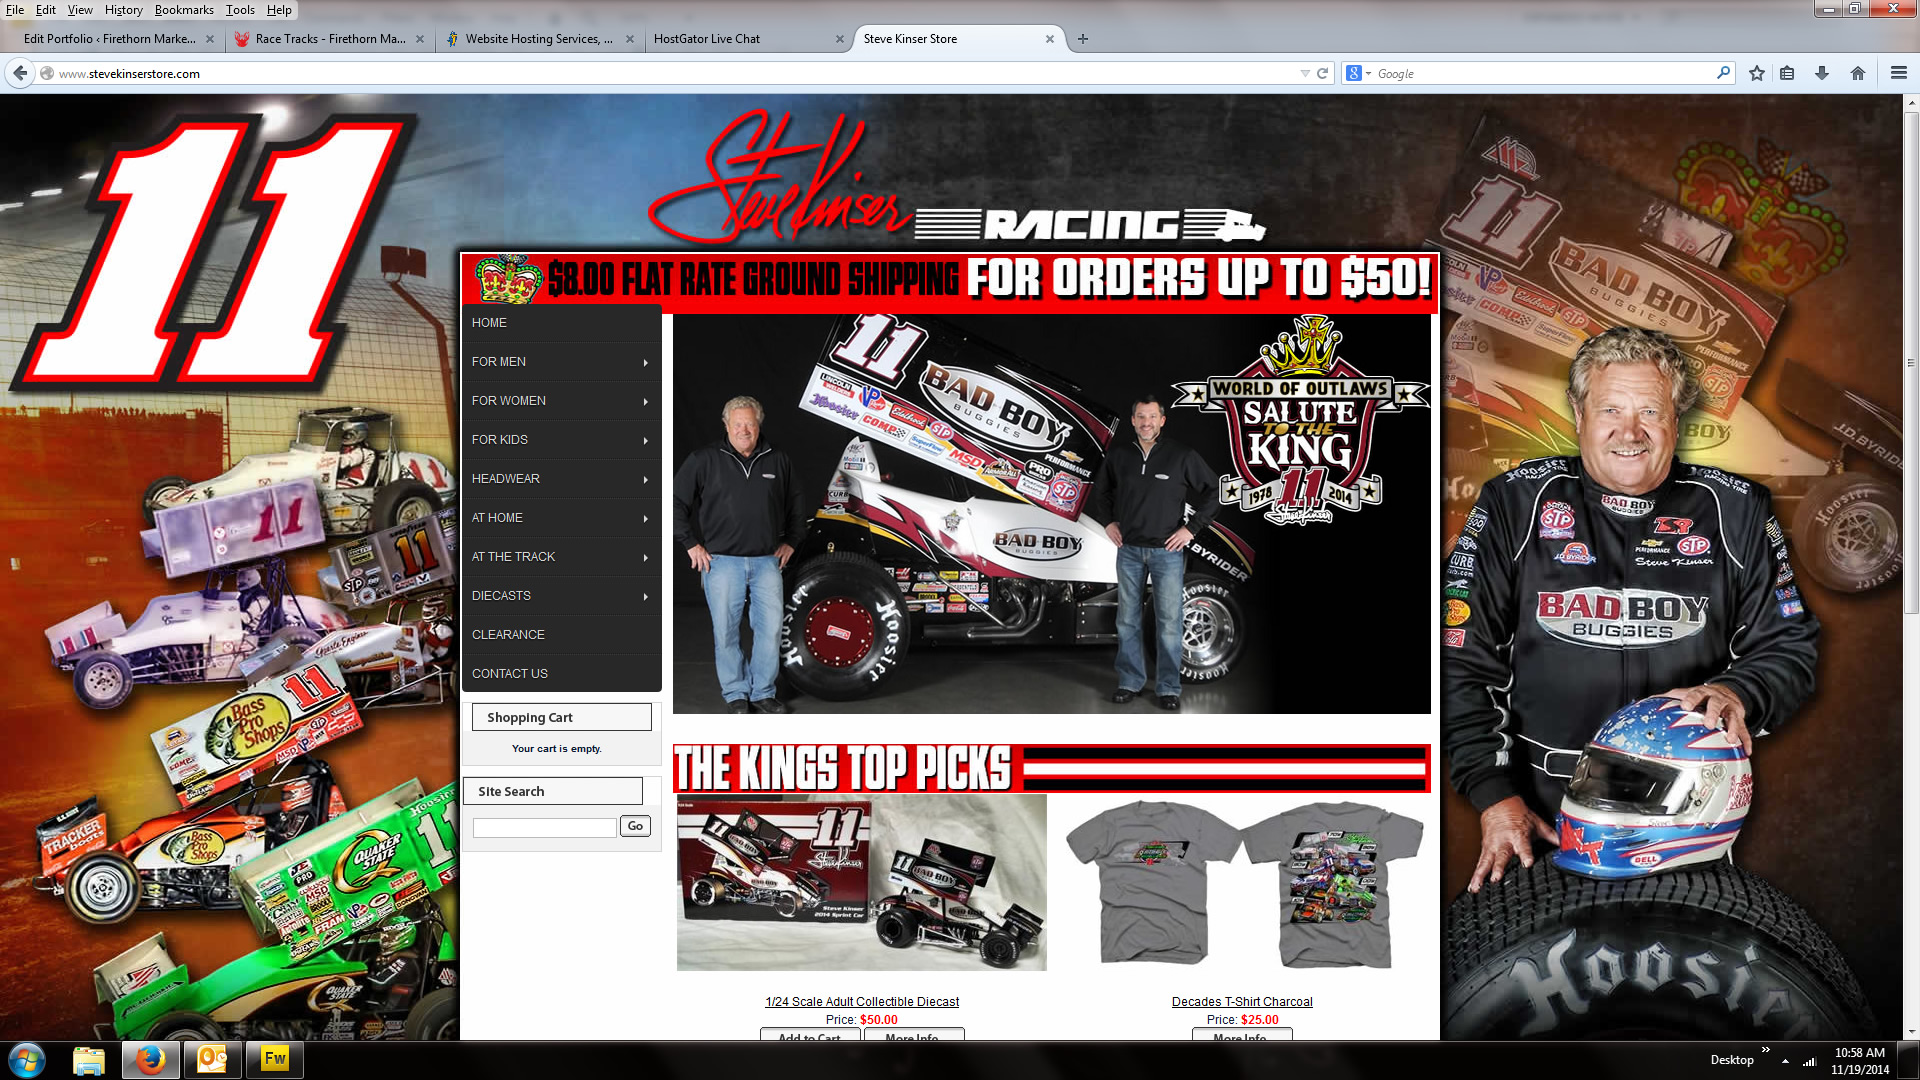 steve kinser store firethorn marketing